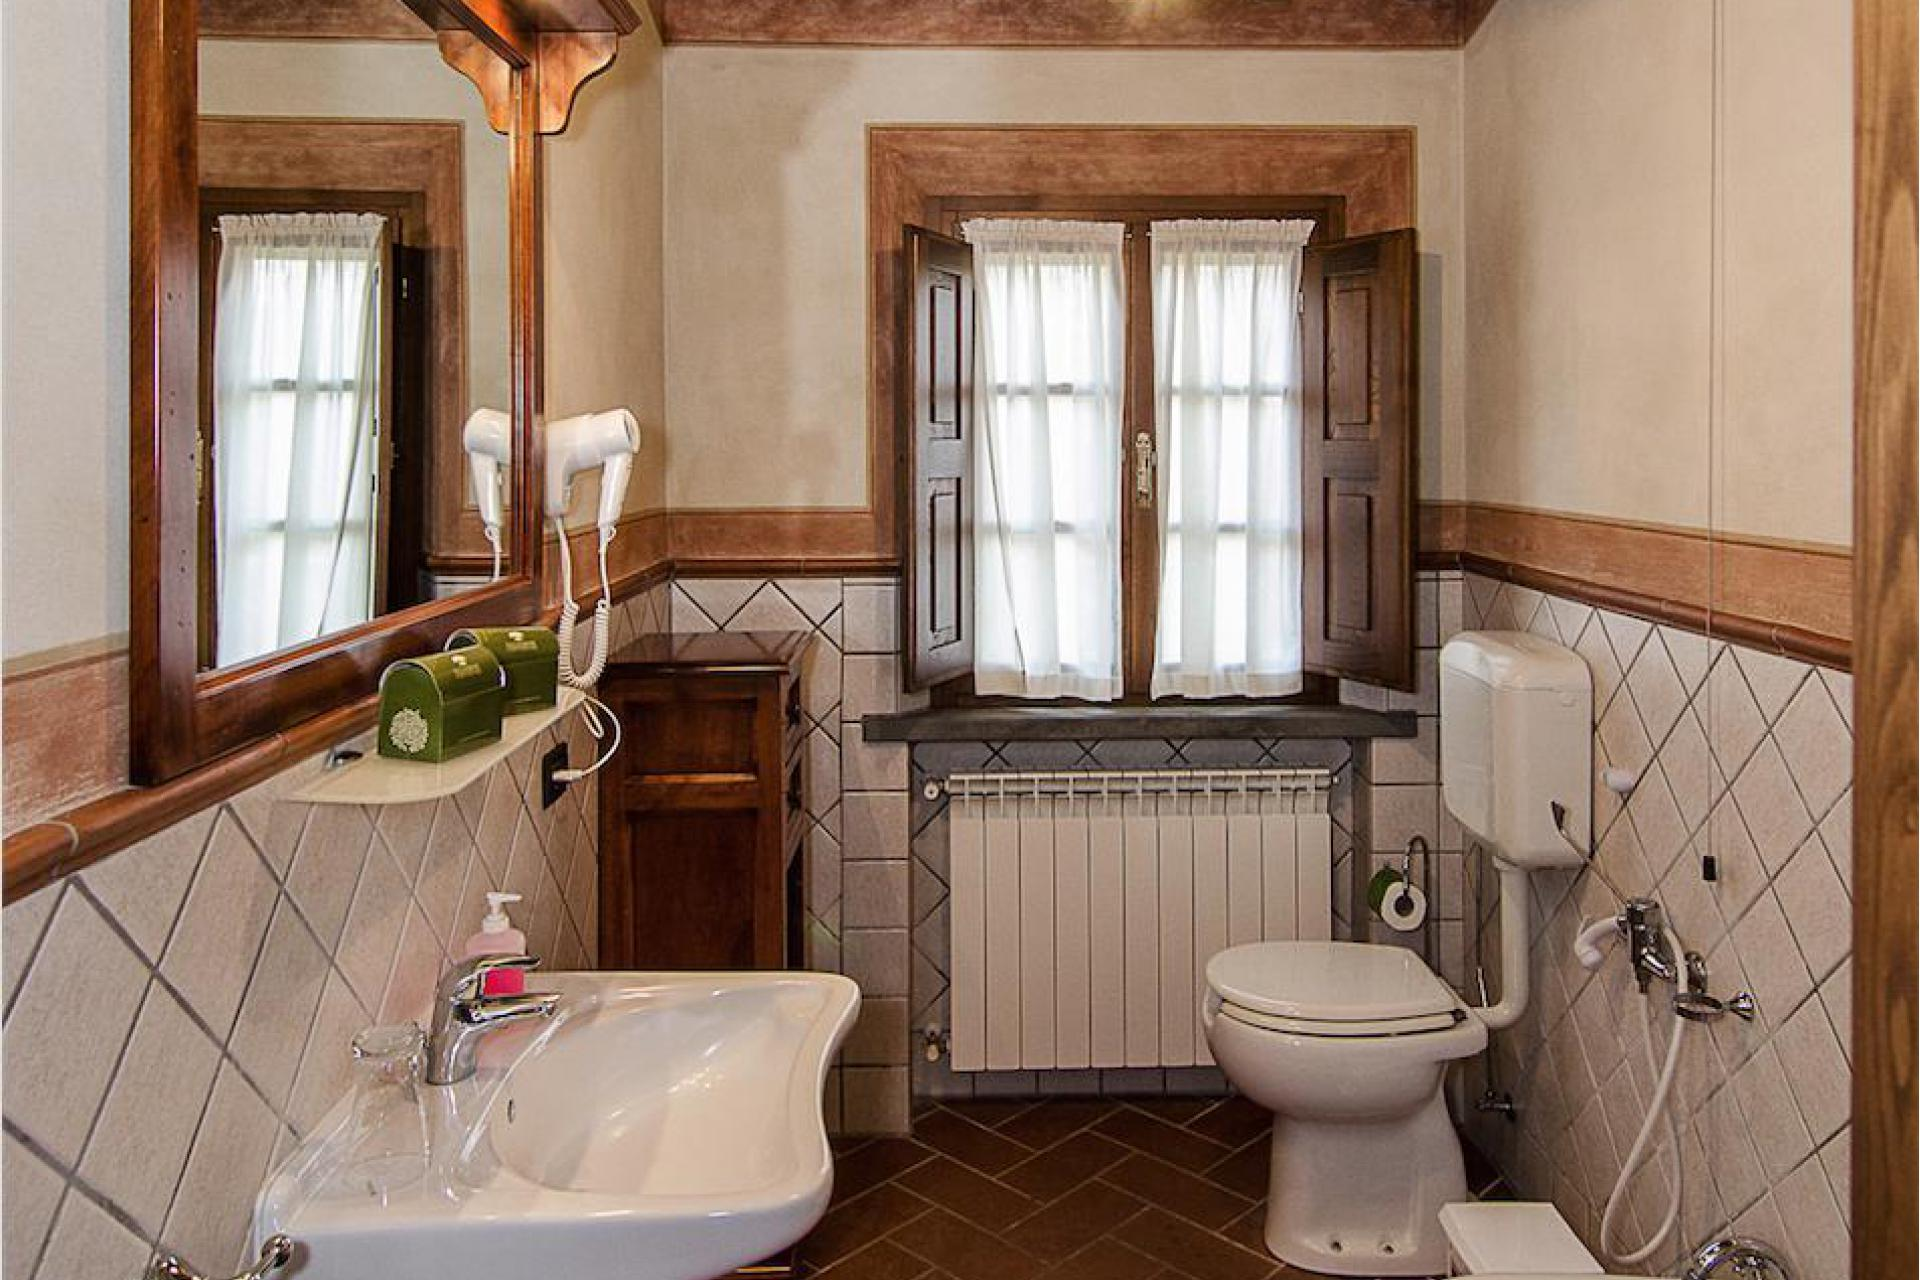 Hospitable agriturismo ideal for families